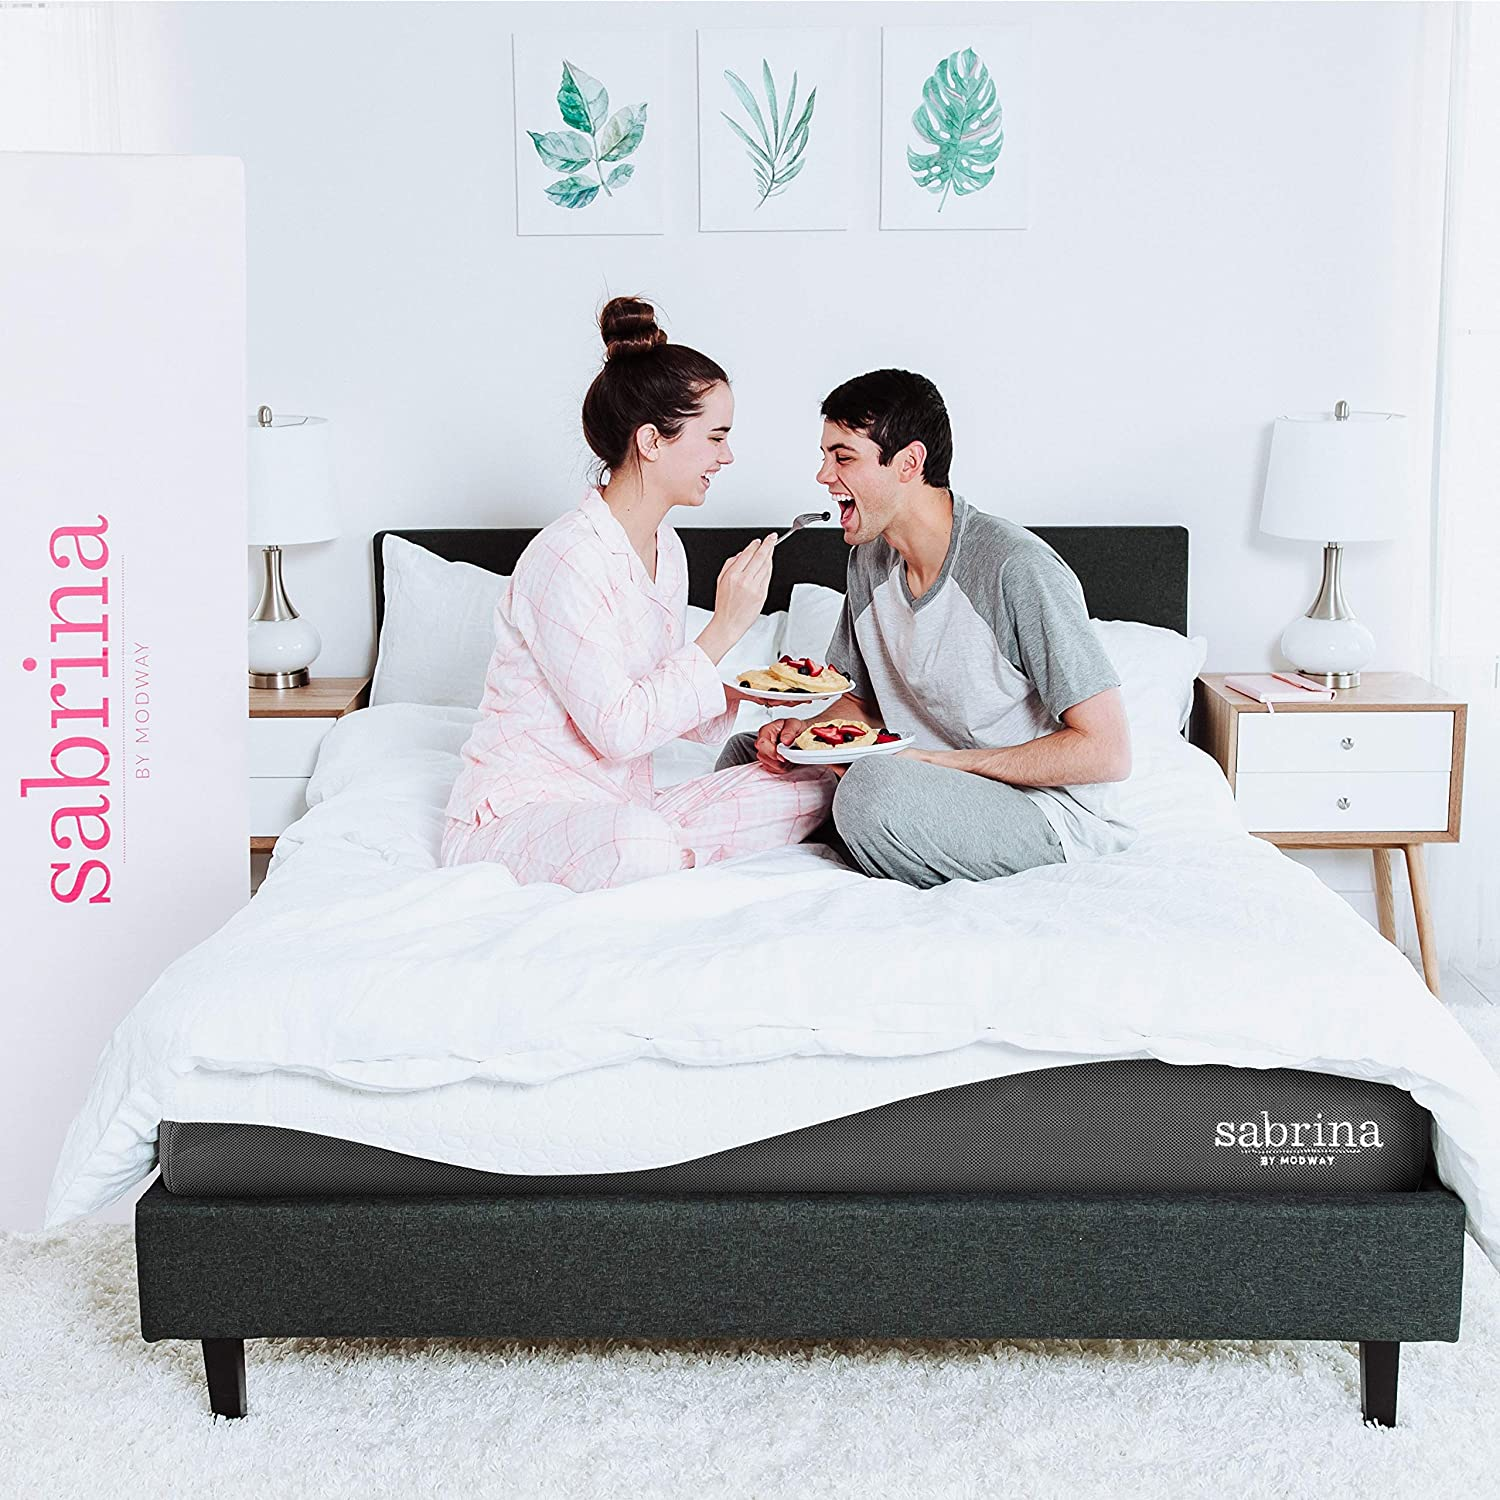 Modway Sabrina 12 Latex Air Gel Cooling Memory King Mattress with CertiPUR-US Certified Foam-Luxury Firm Mattress-10-Year Warranty